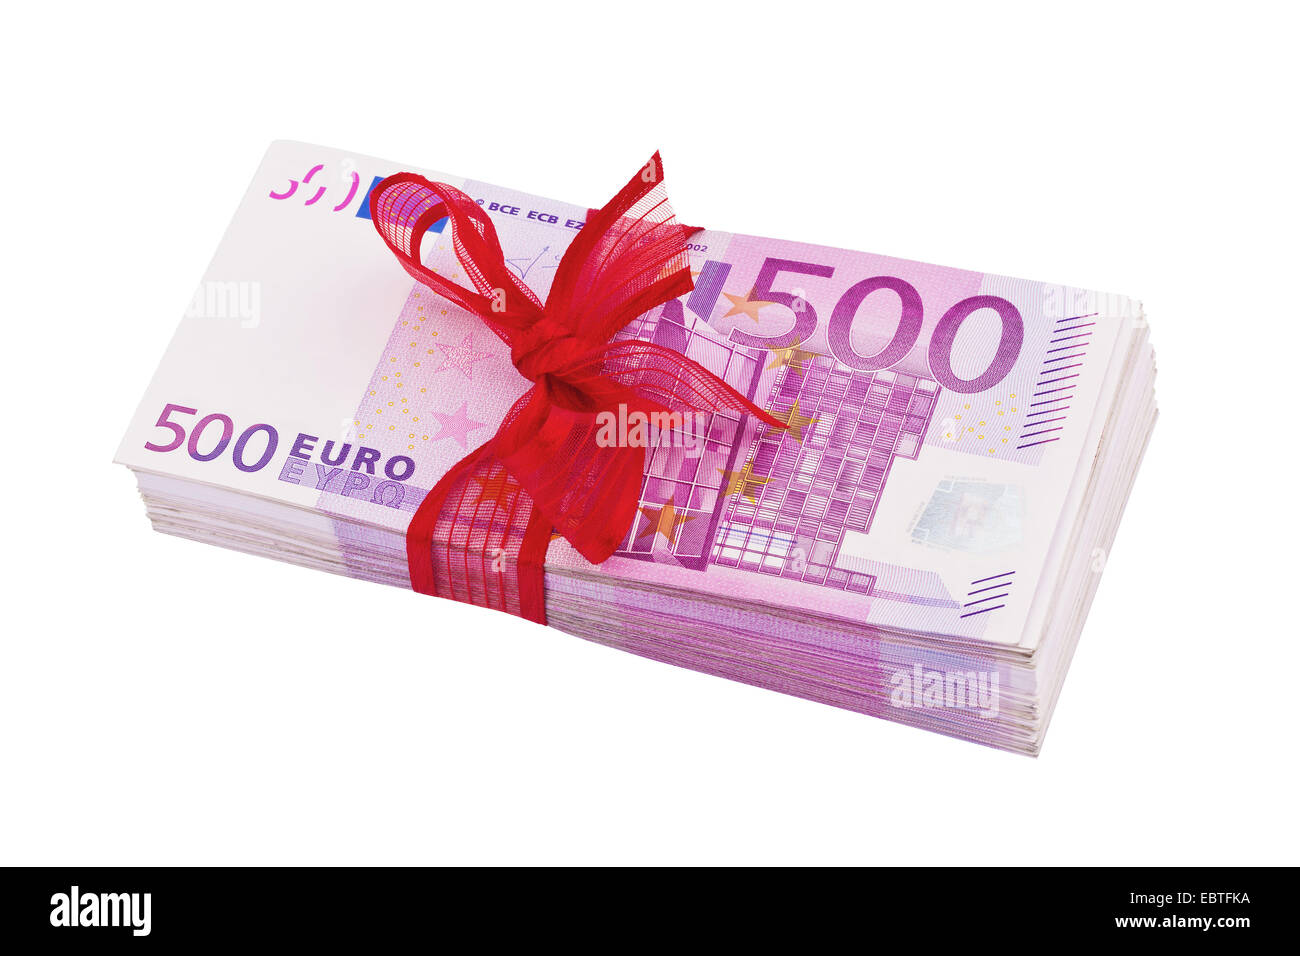 wad of 500 Euro bills with red gift ribbon - Stock Image